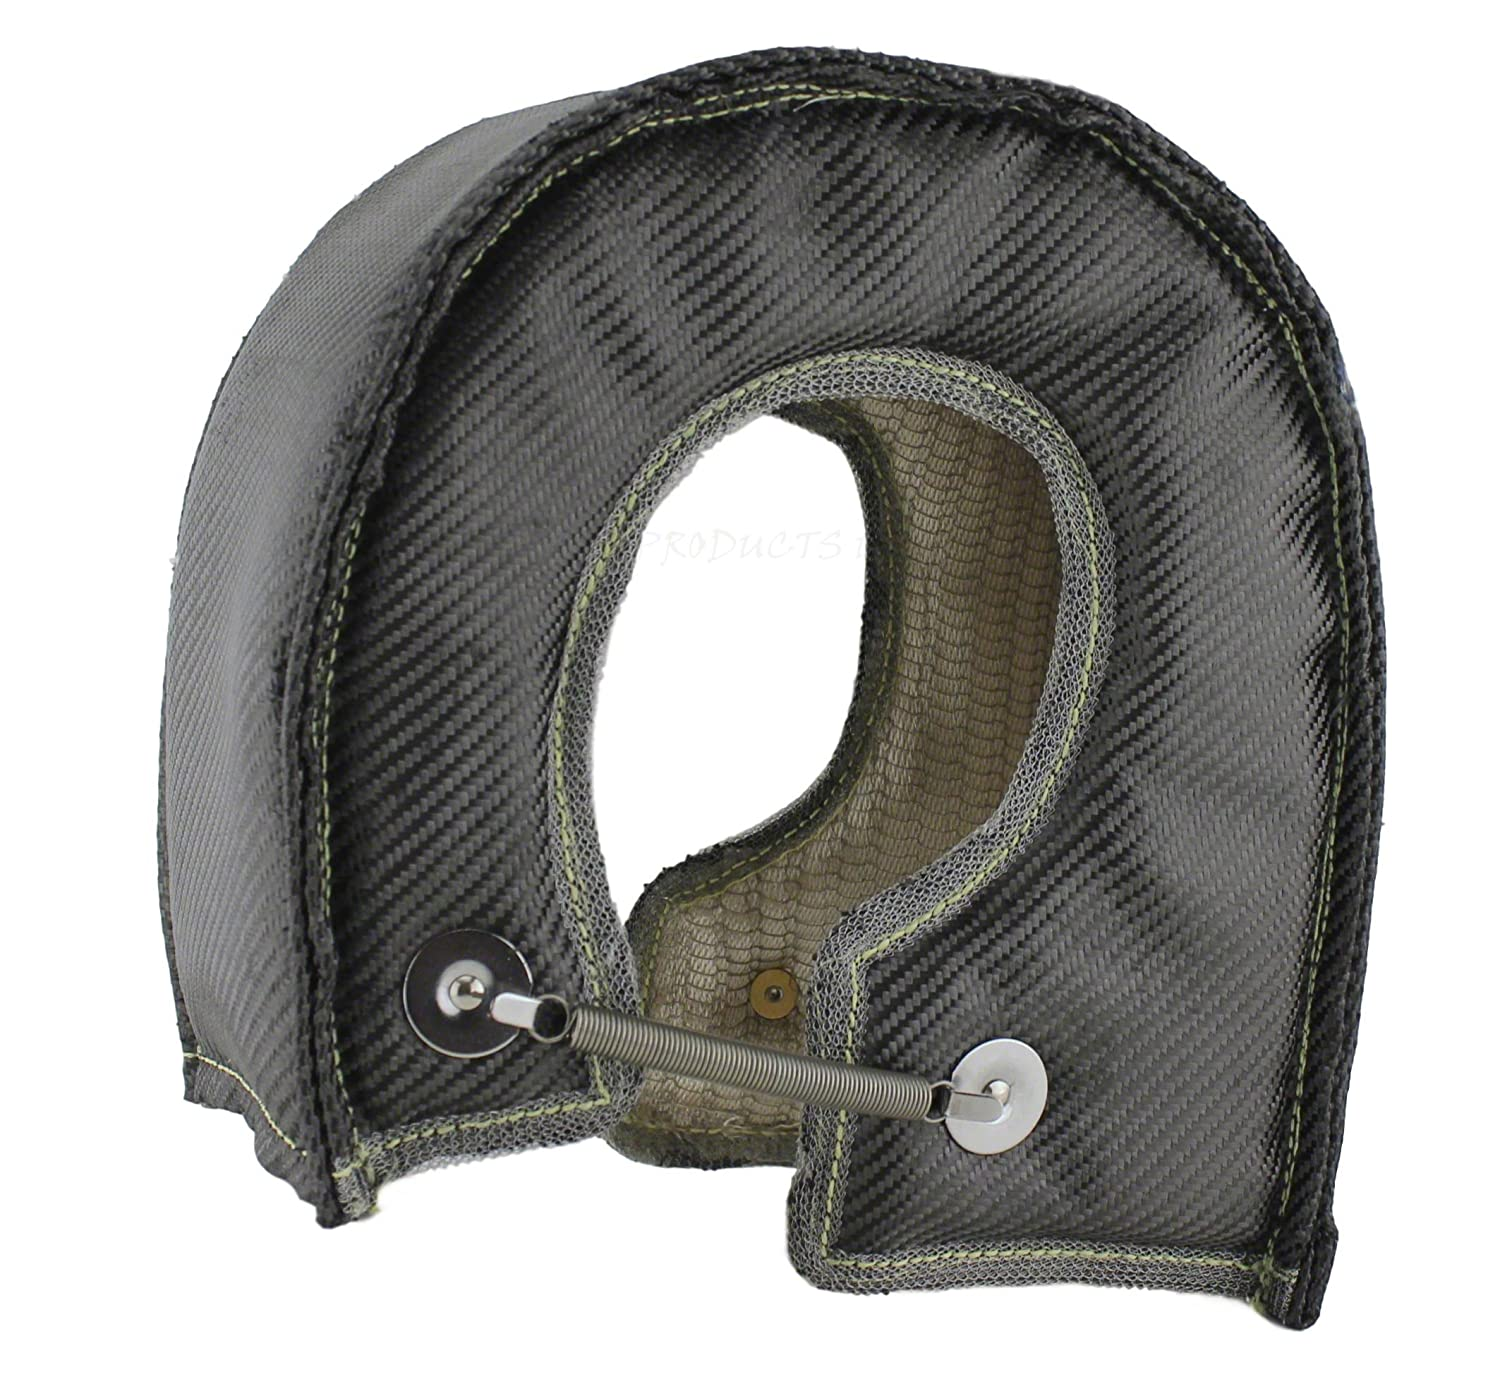 Standard Mesh, LT6ML - Large JCP Mesh Lined Titanium Turbo Blanket Heat Shield With Stainless Steel Ties